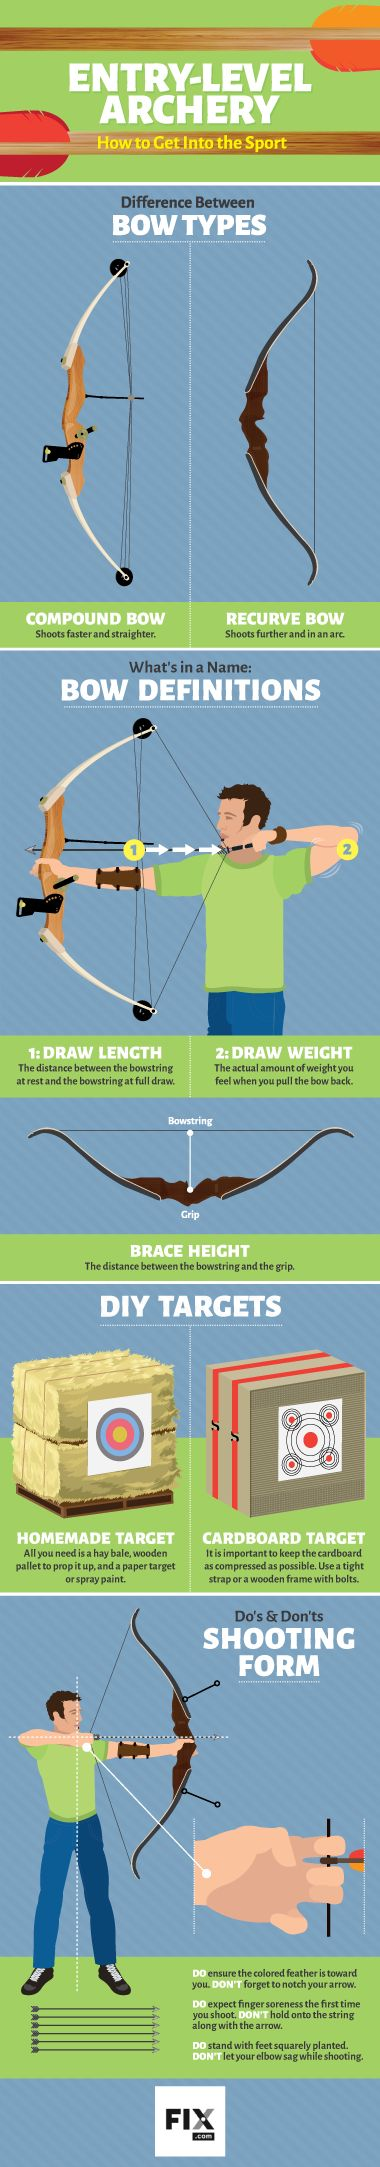 How to Get Started in Archery | Fix.com. Tried on a course, I have short wrist to elbow length so wont be much good at it.